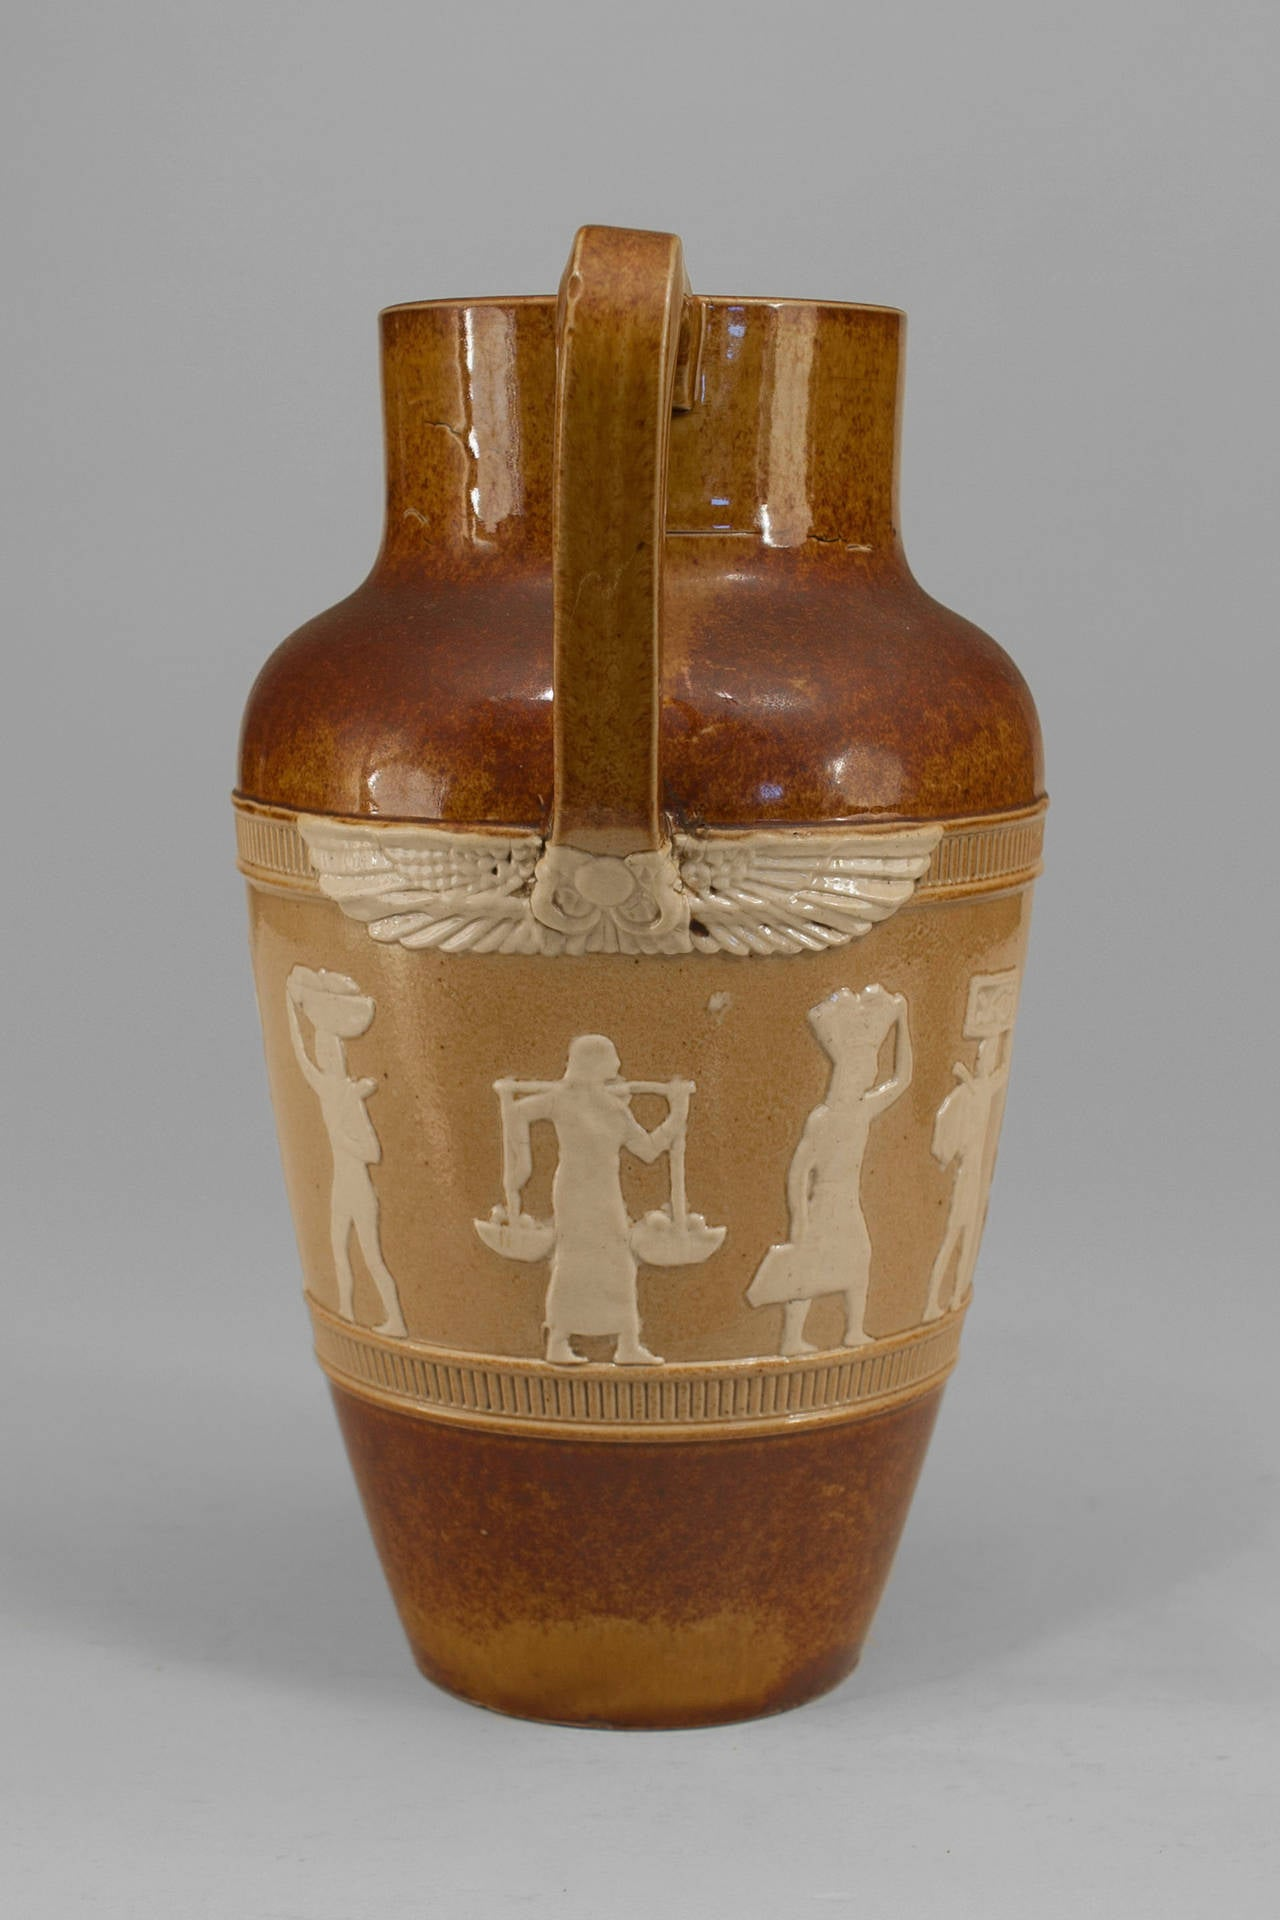 1920s English Egyptian Revival Pitcher by Doulton In Excellent Condition For Sale In New York, NY